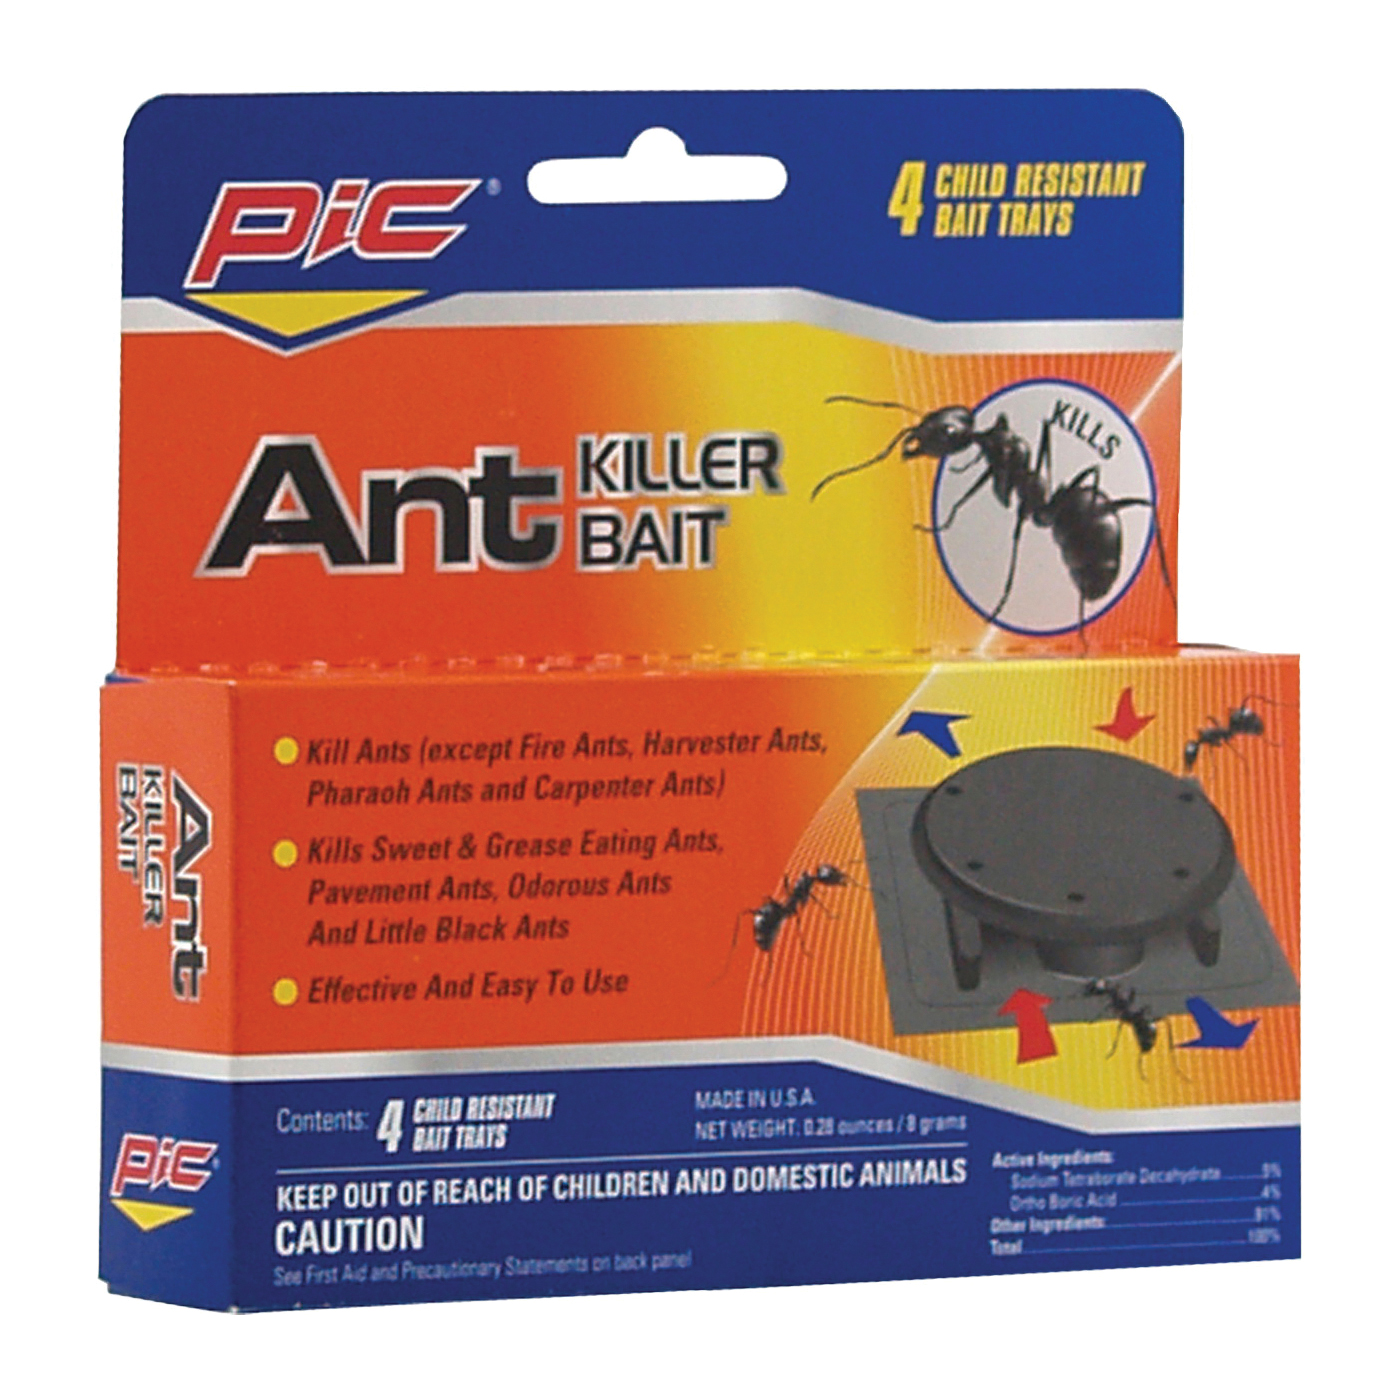 Picture of Pic Homeplus AT-4 Ant Killer, Gel, Sweet